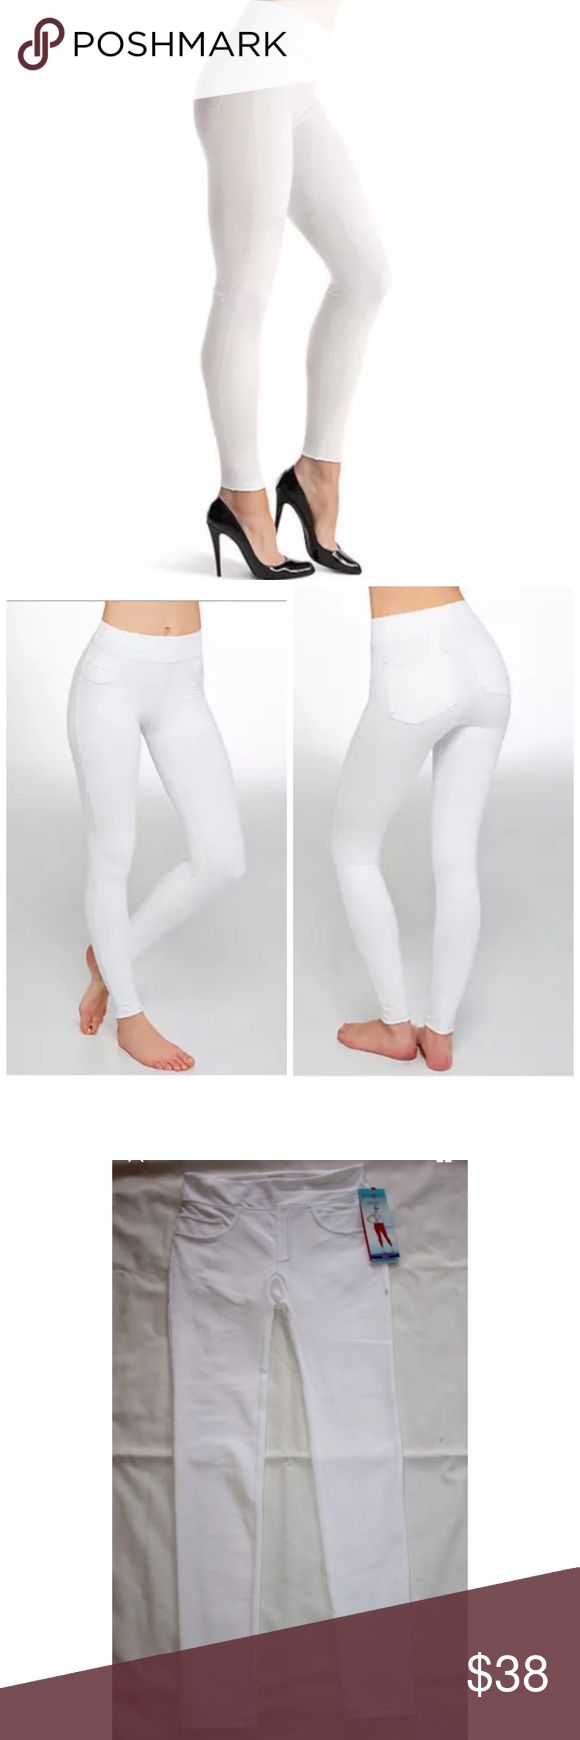 SPANX ASSETS STRUCTURED LEGGINGS JEGGINGS ***PLEASE NOTE***because of colors there is very faint minor dirt/dust marks from store handling that will wash right out! These jeggings combine the style of leggings and the power of shapewear. With a slimming panel built-in to the waistband, you'll feel amazing wearing these women's jeggings. Built-in invisible shaping 2-pocket & 2-faux pocket Faux zipper fly & pockets with contrast stitching Elastic waistband Body: cotton, polyester, spandex…